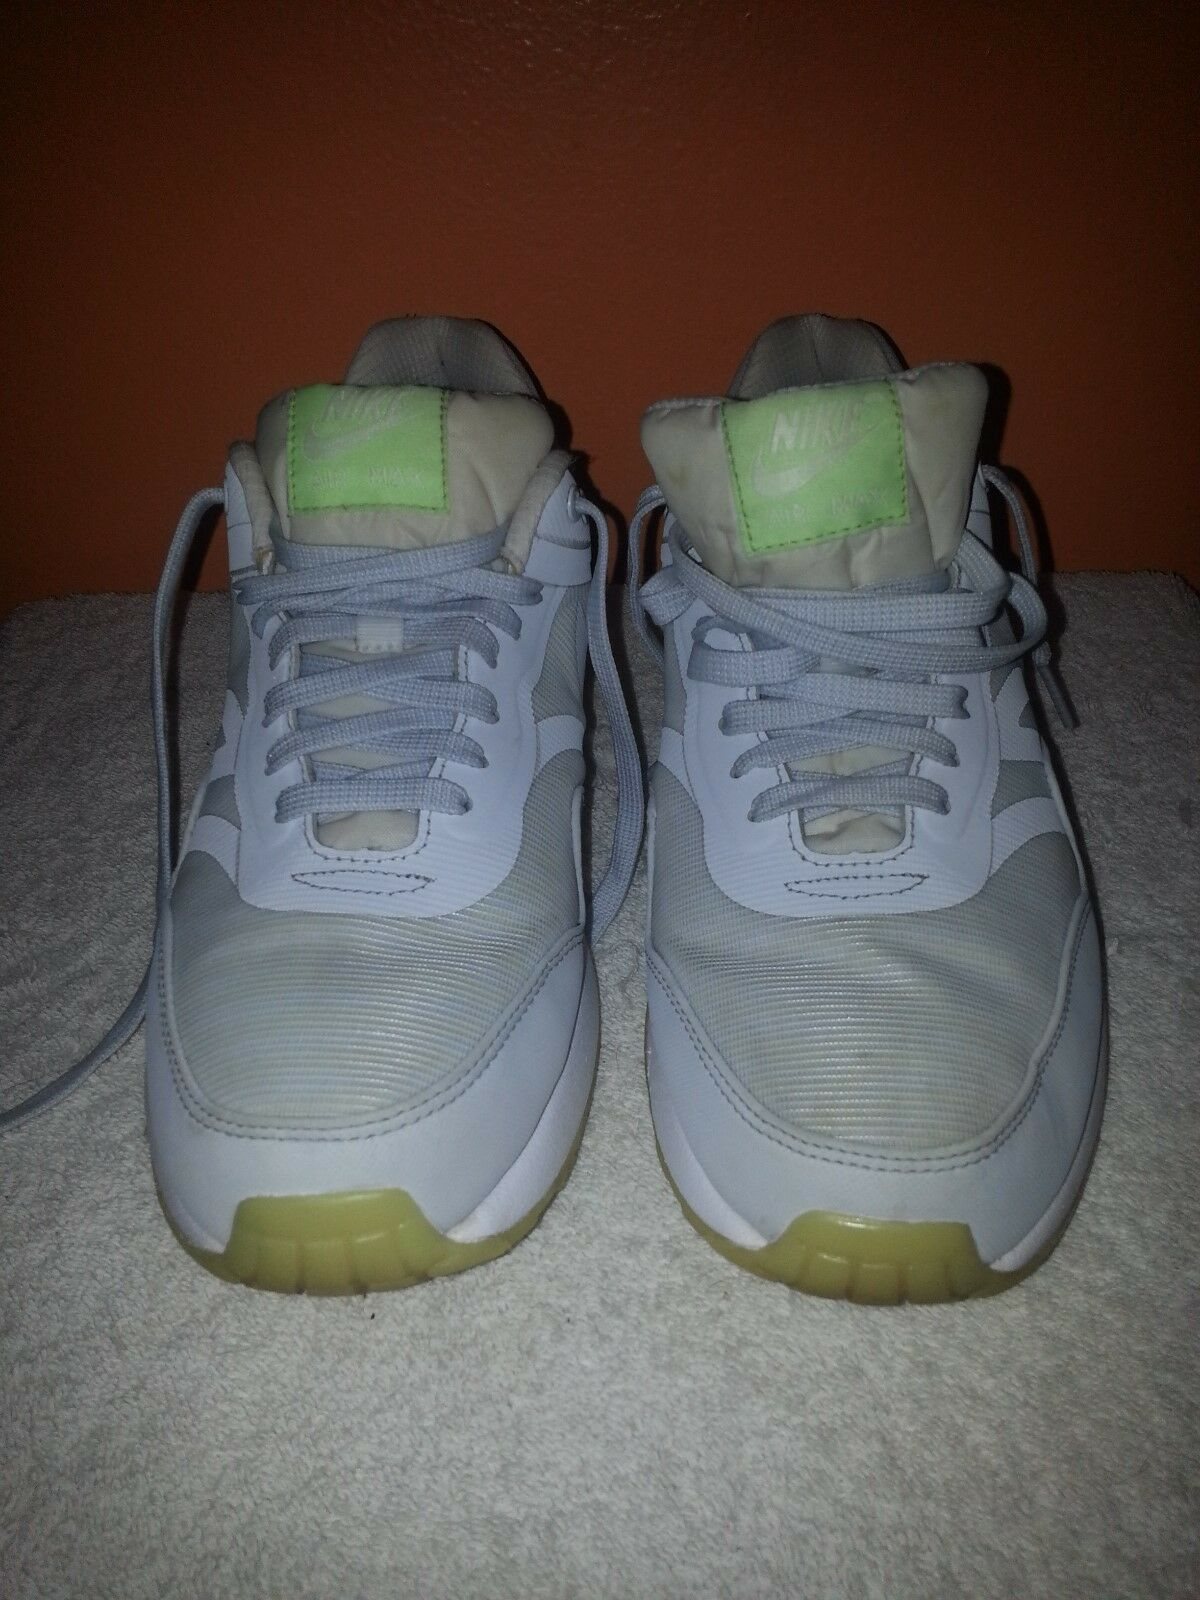 Nike Men's Air Max 1 PRM Tape Glow In The Dark White Sneakers Comfortable The most popular shoes for men and women